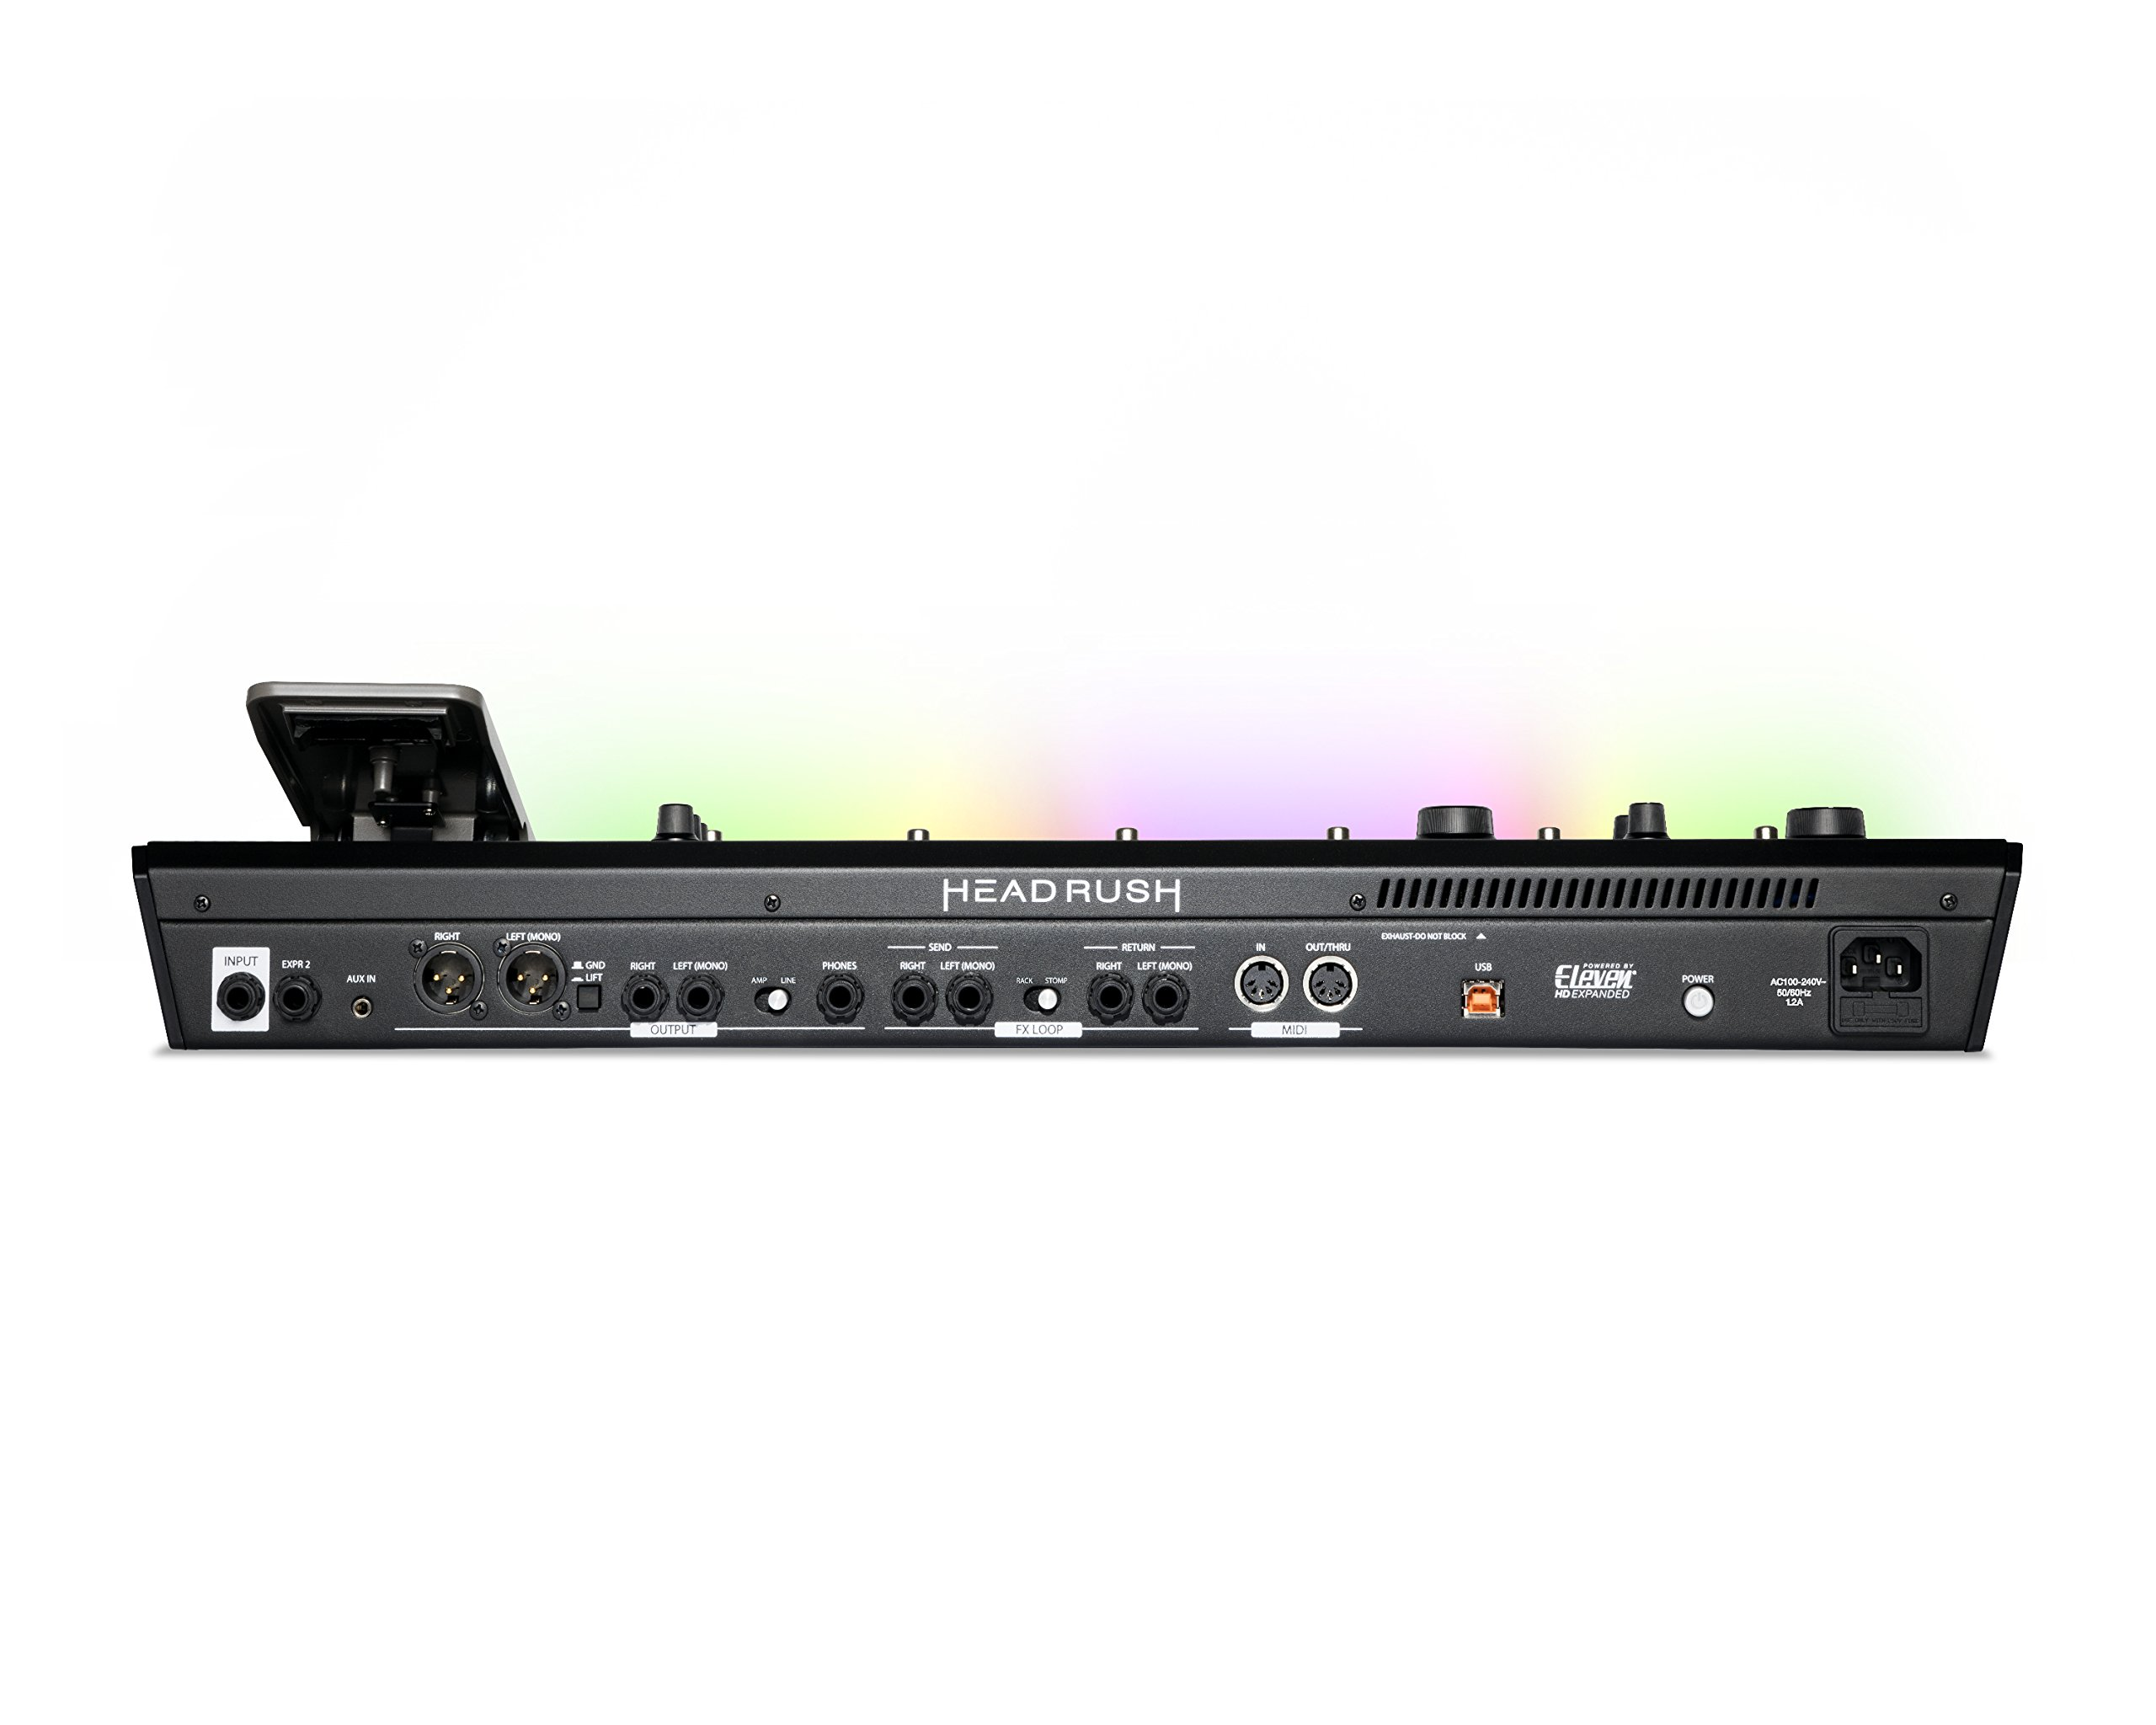 HeadRush Pedalboard | Guitar Amp and FX Modeling Processor by Head Rush (Image #3)